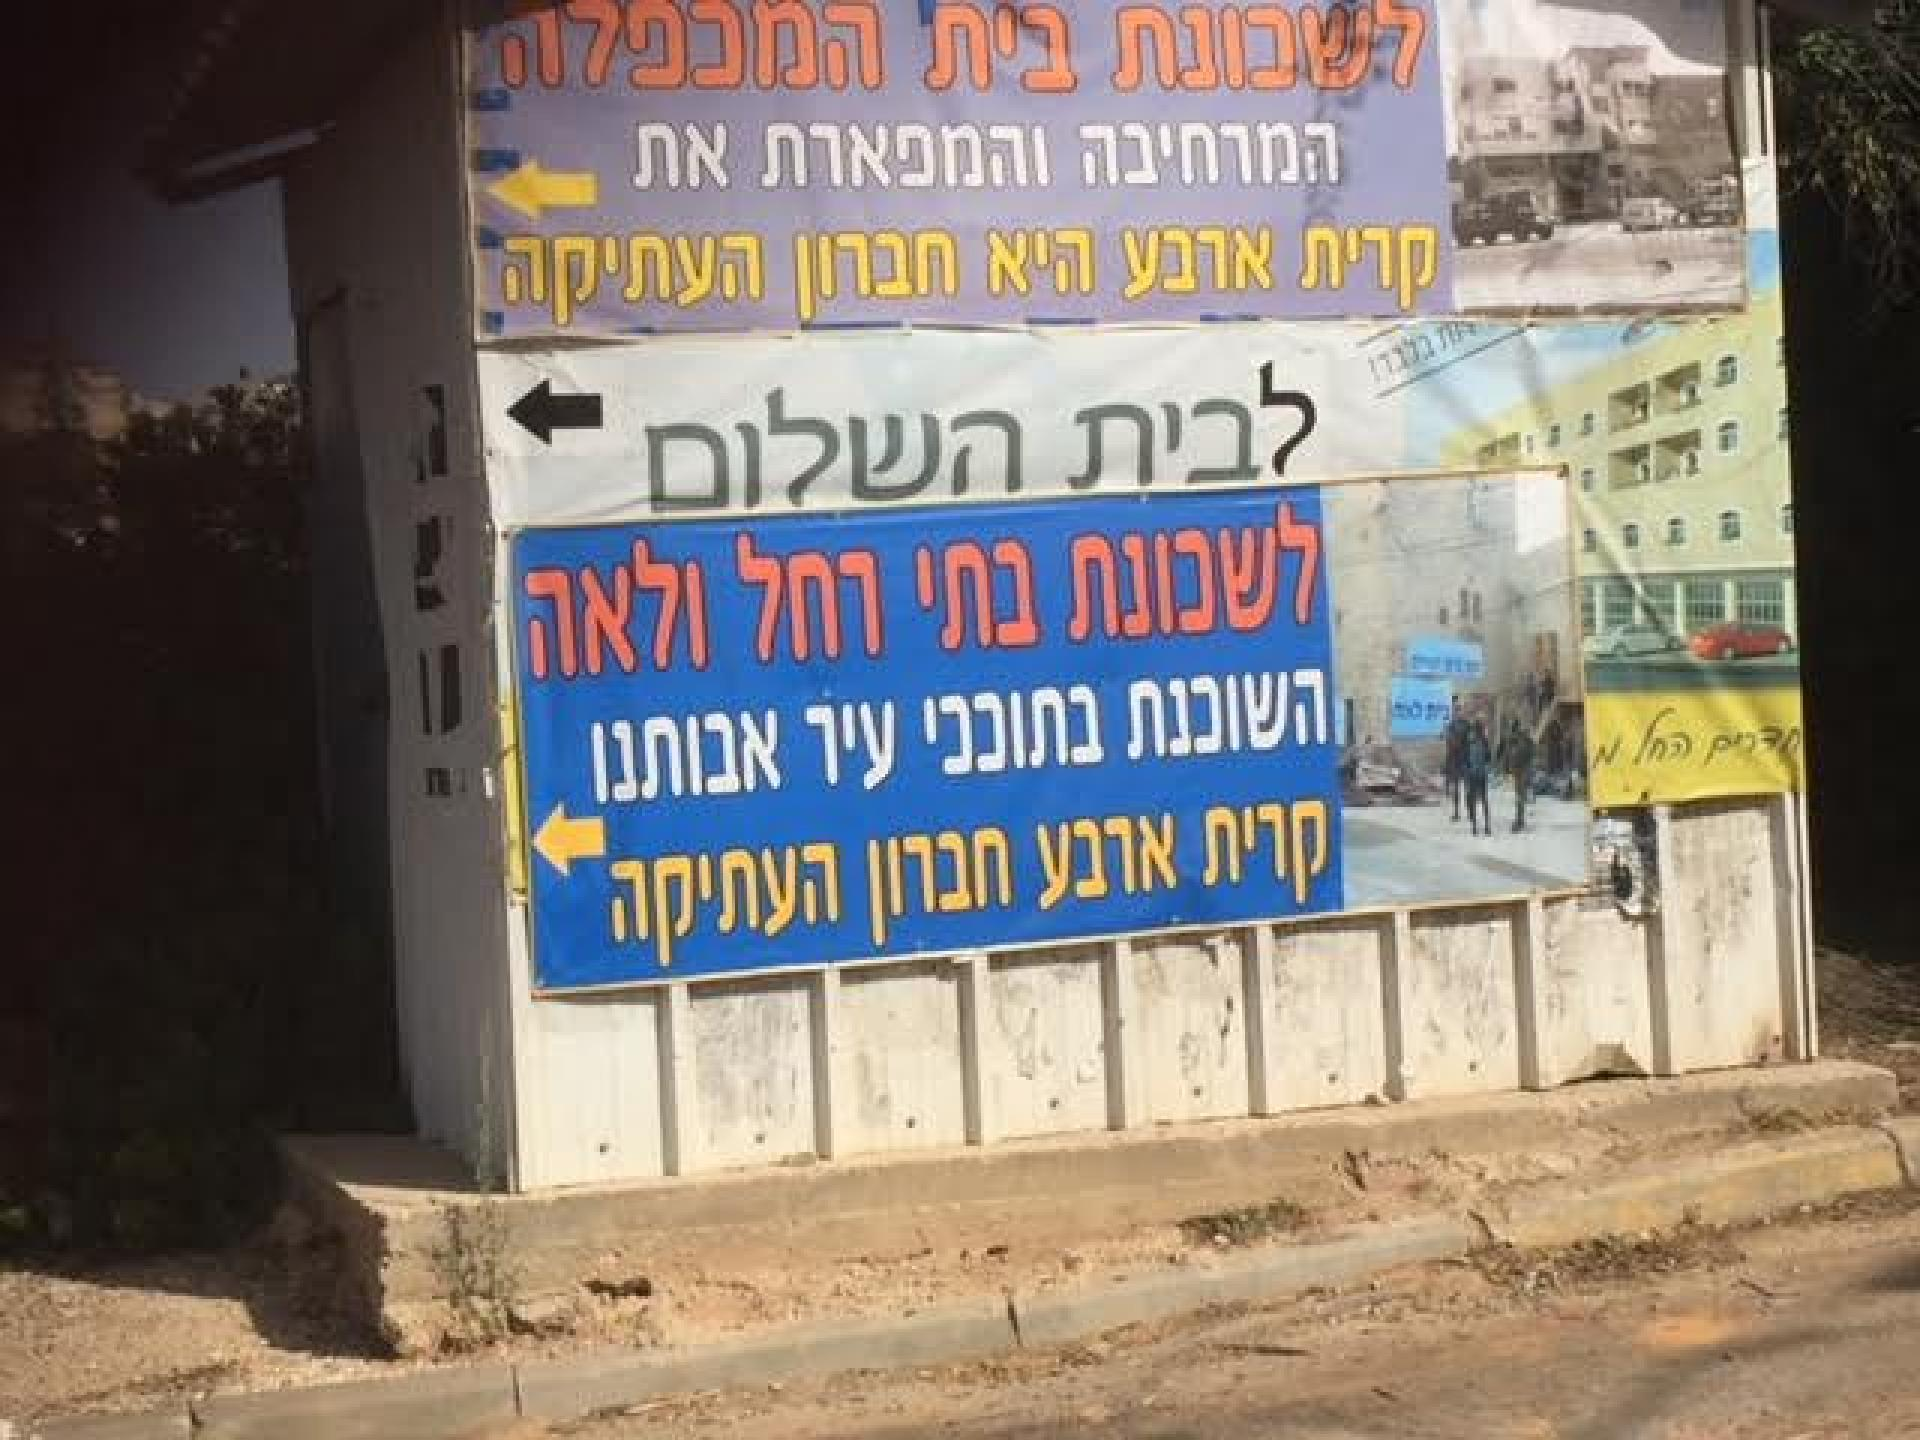 At the exit from Kiryat Arba towards Hebron, this banner is hanging